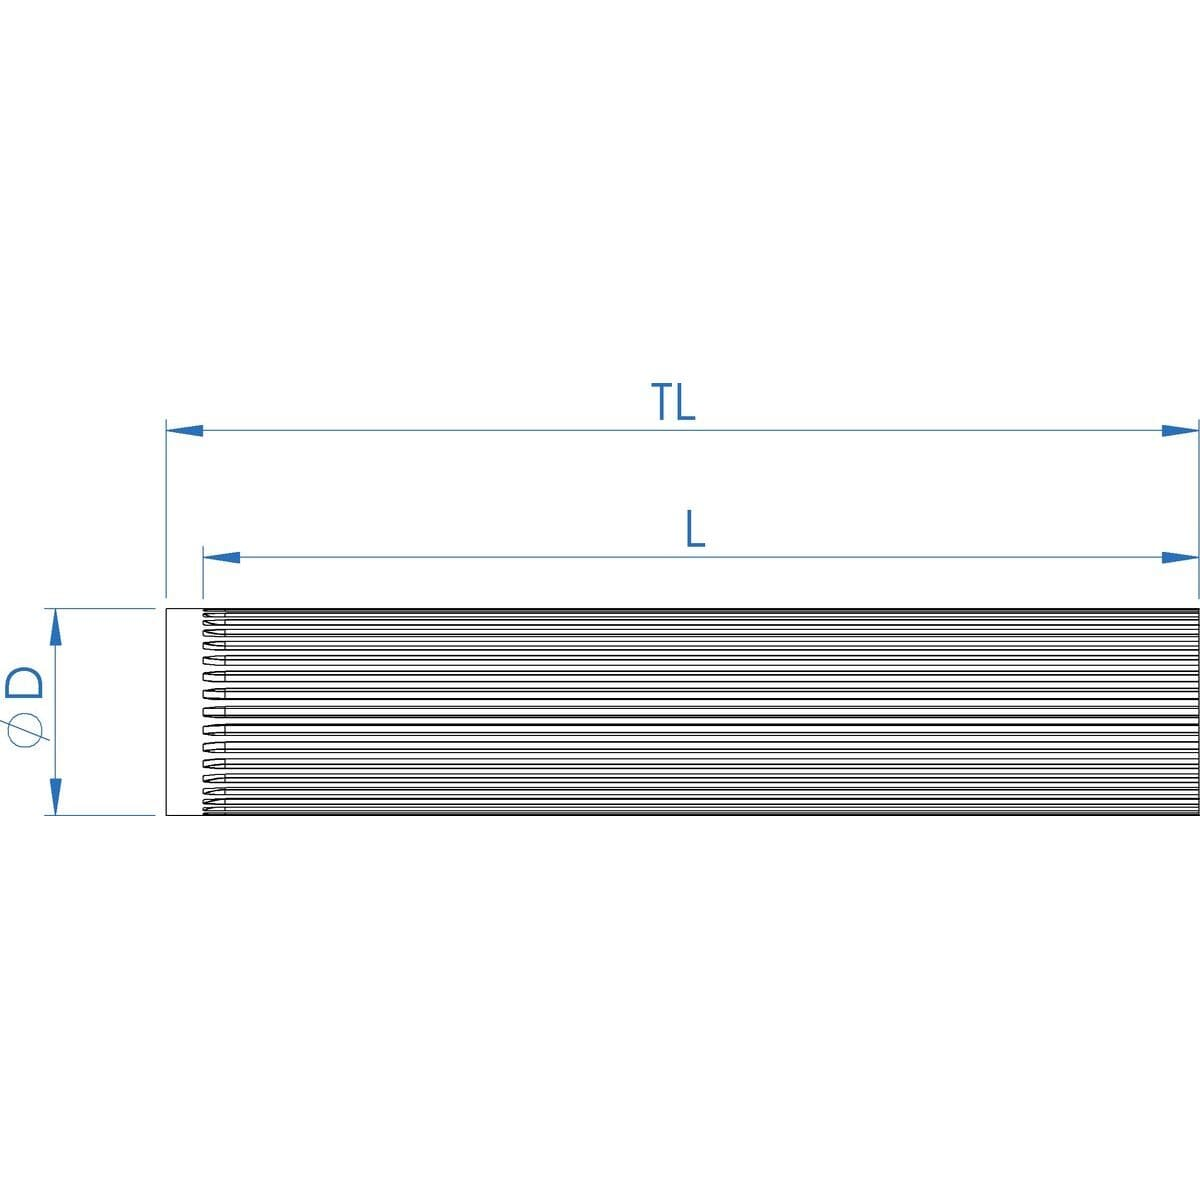 19 Teeth x 160mm Length, AT10 Type Precision Timing Pulley Bar Stock Lengths - BAT10/19 Drawing